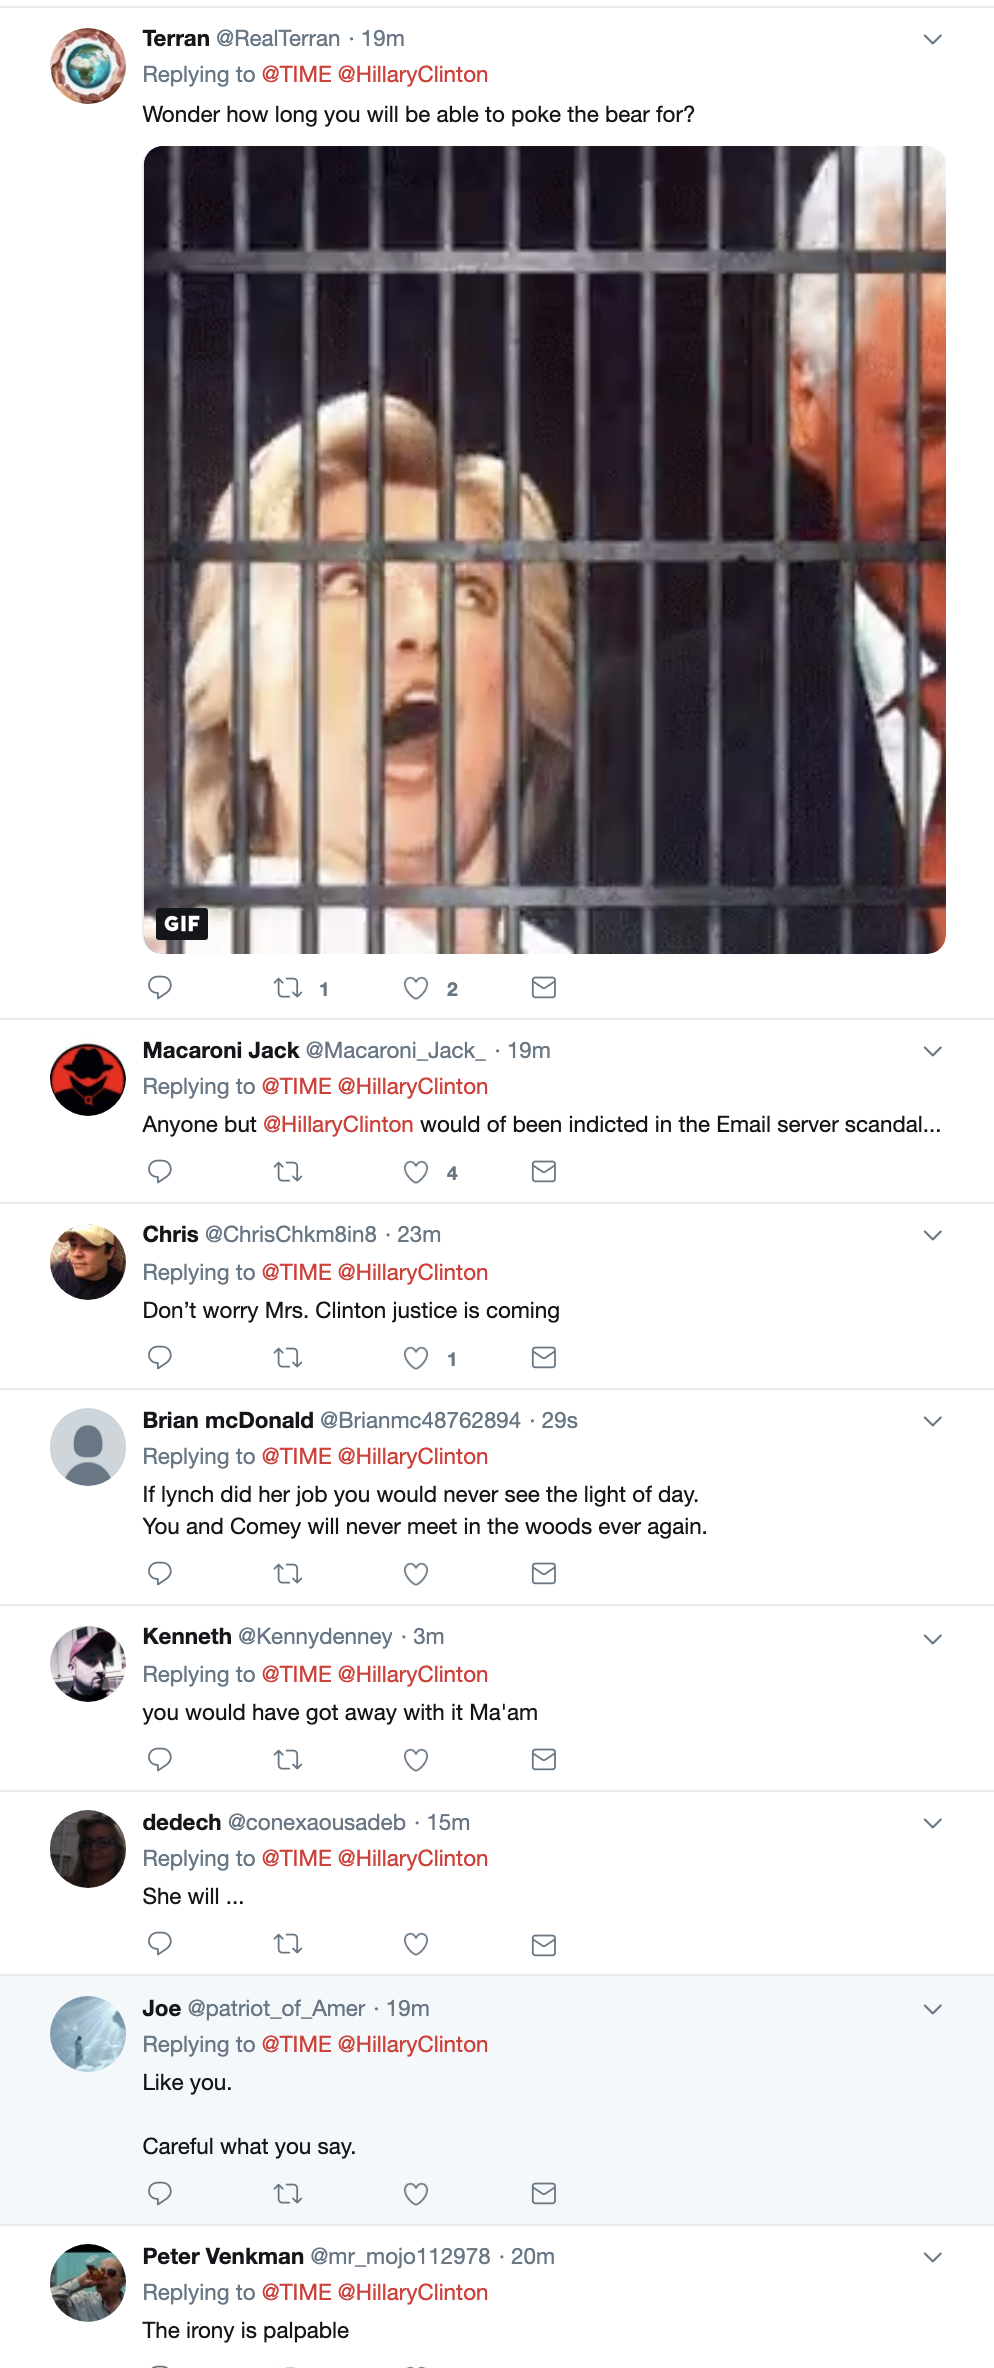 Screen-Shot-2019-04-23-at-3.06.24-PM Hillary Talks About Trump Going To Prison & People Lose Their Sh*t Corruption Crime Donald Trump Election 2016 Investigation Mueller Politics Robert Mueller Russia Top Stories